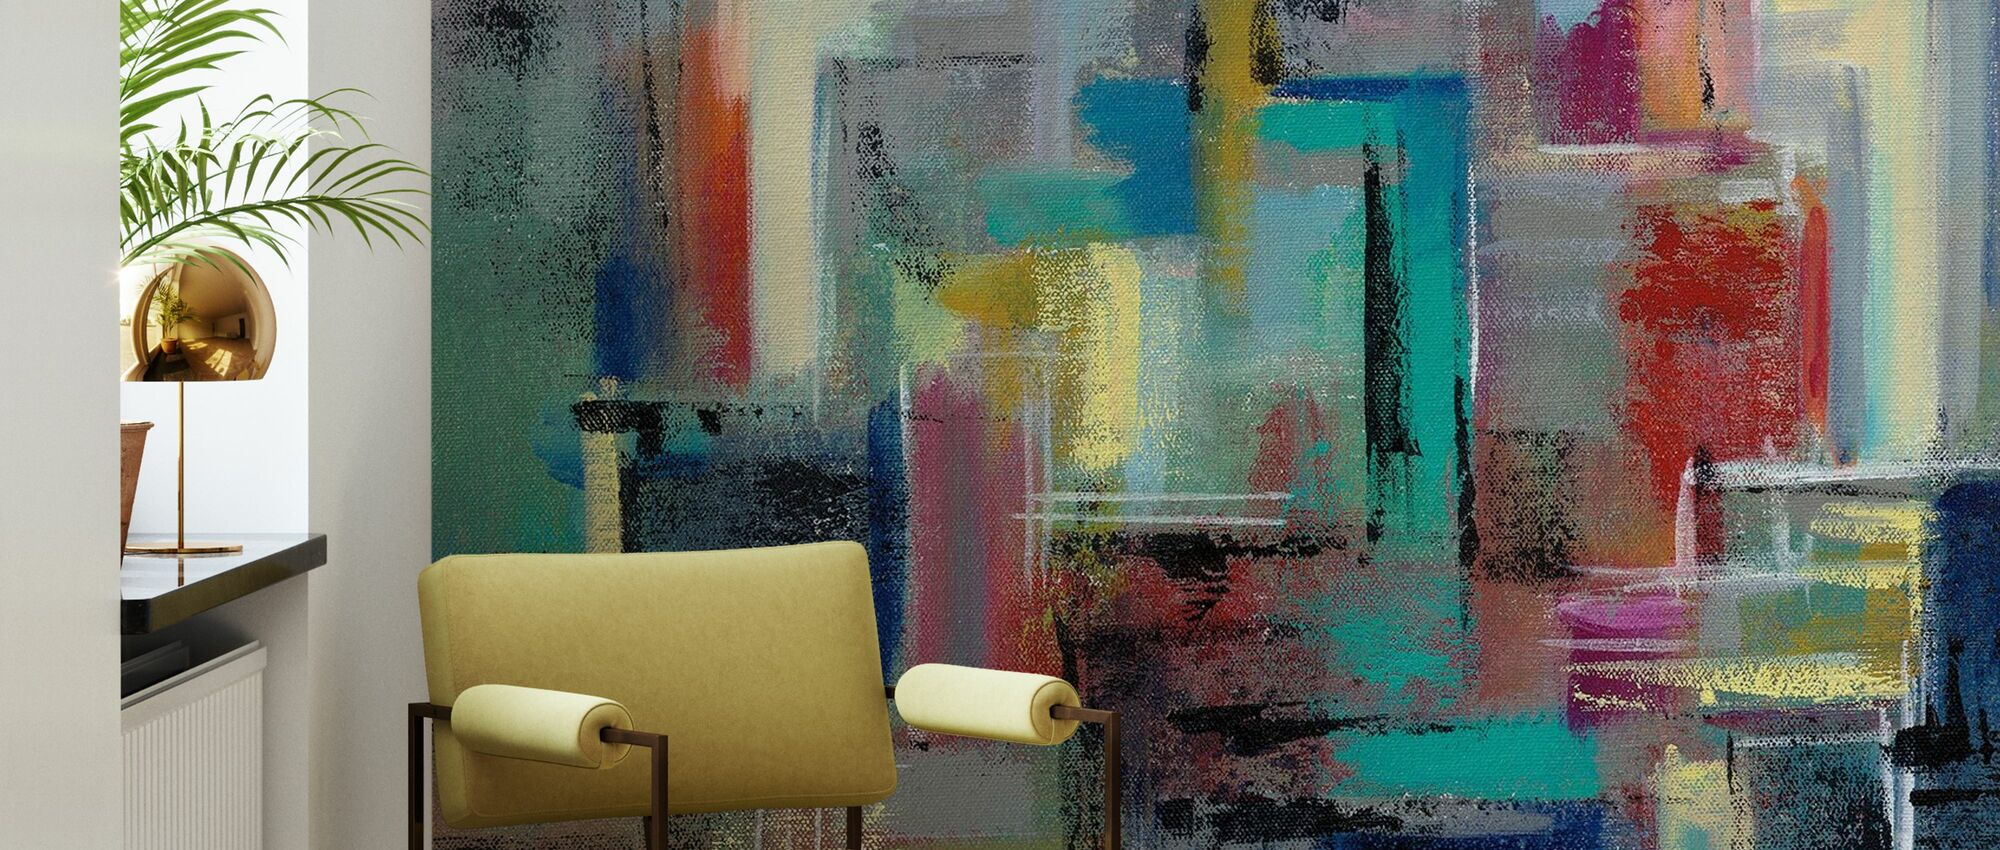 Colorful Day in Manhattan - Wallpaper - Living Room